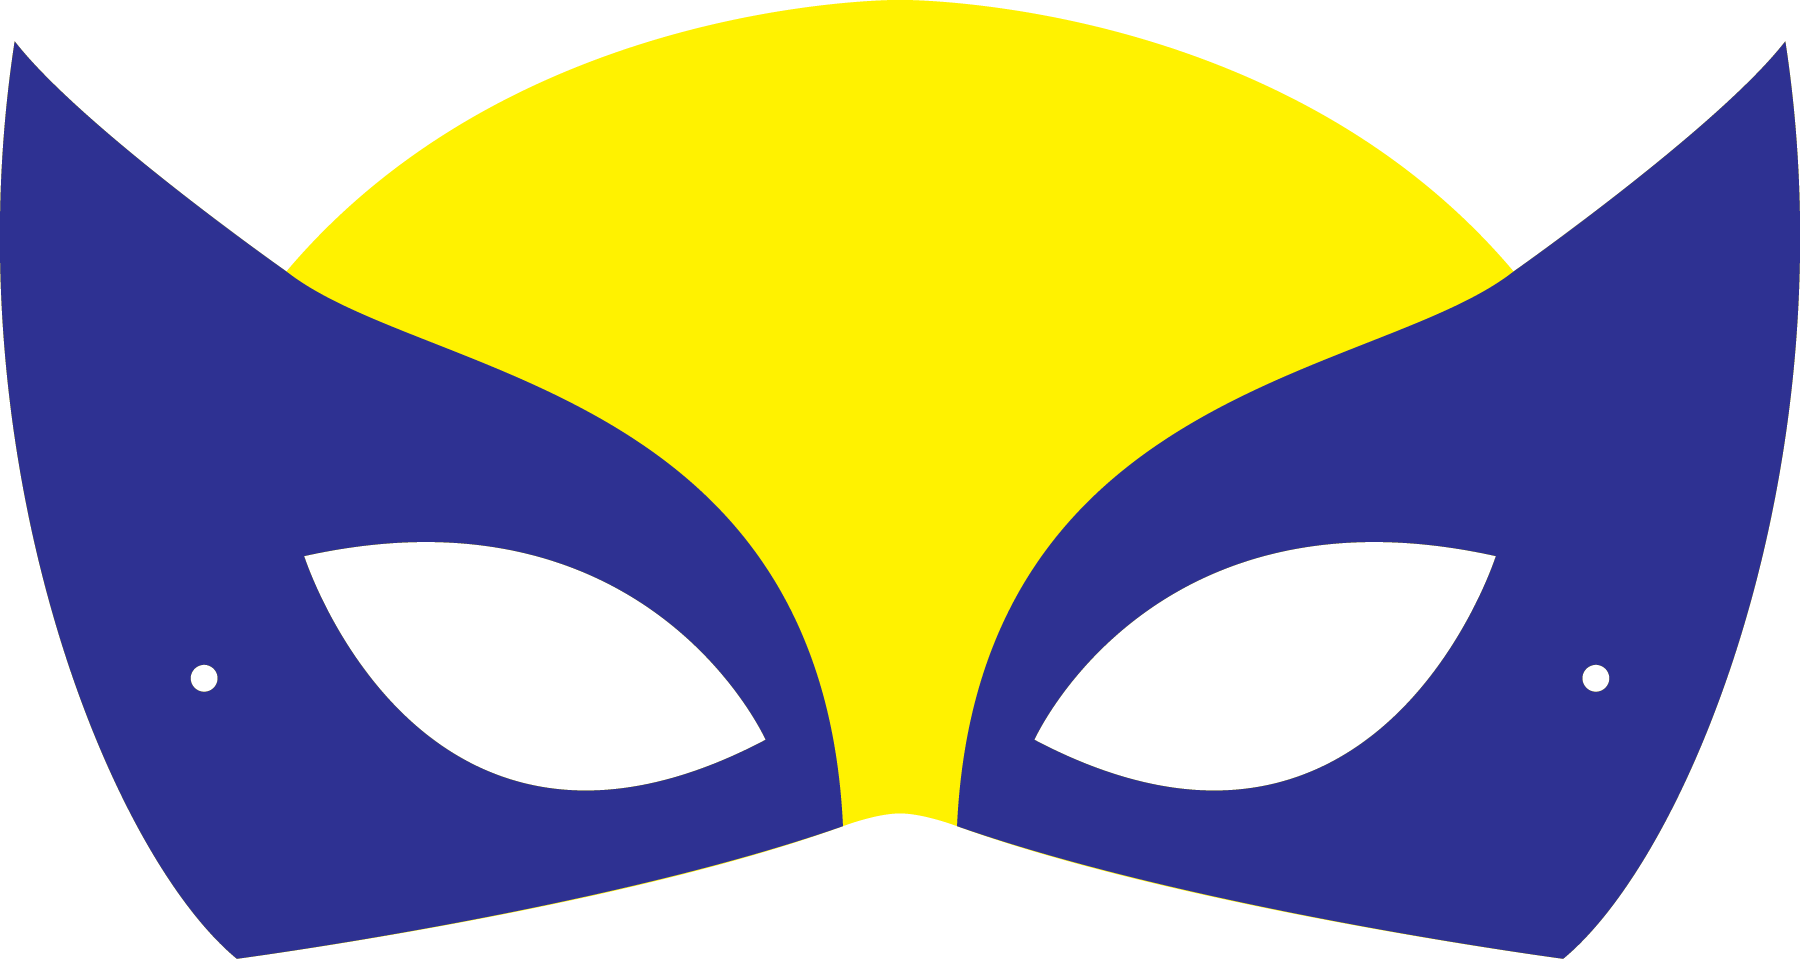 image relating to Super Hero Printable Masks known as Hero clipart superhero mask, Hero superhero mask Clear